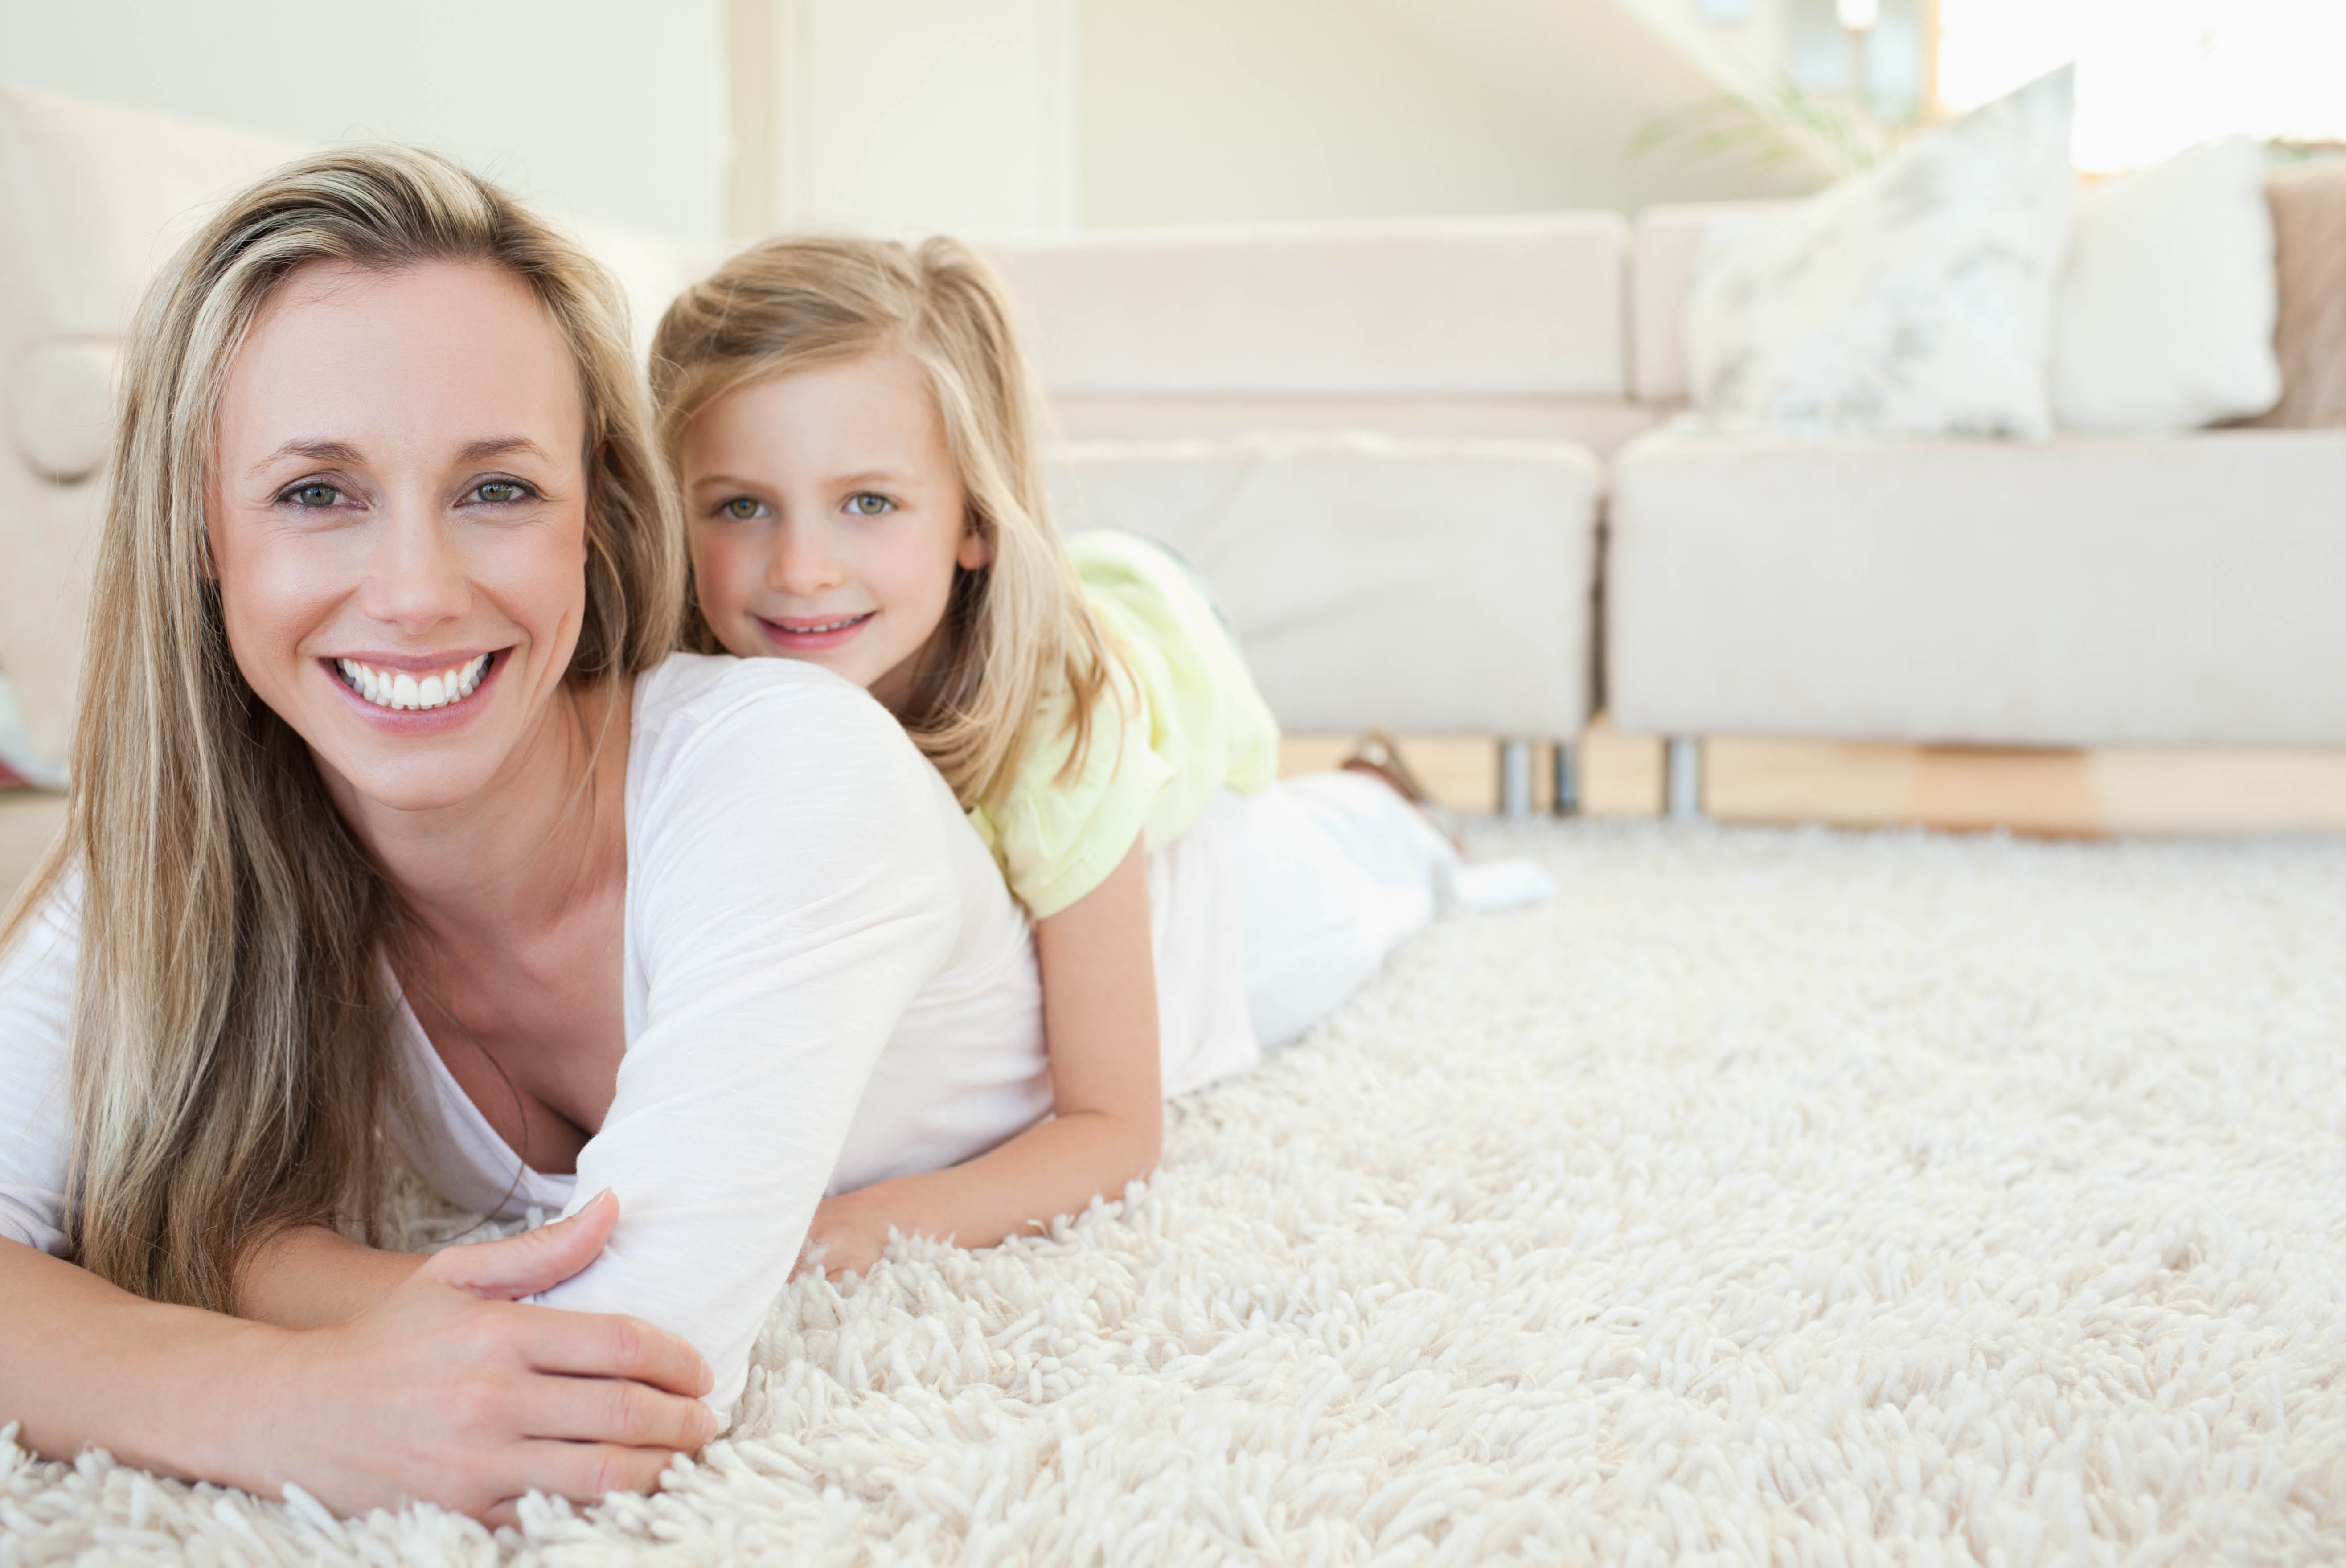 Carpet cleaners near Cayce, SC